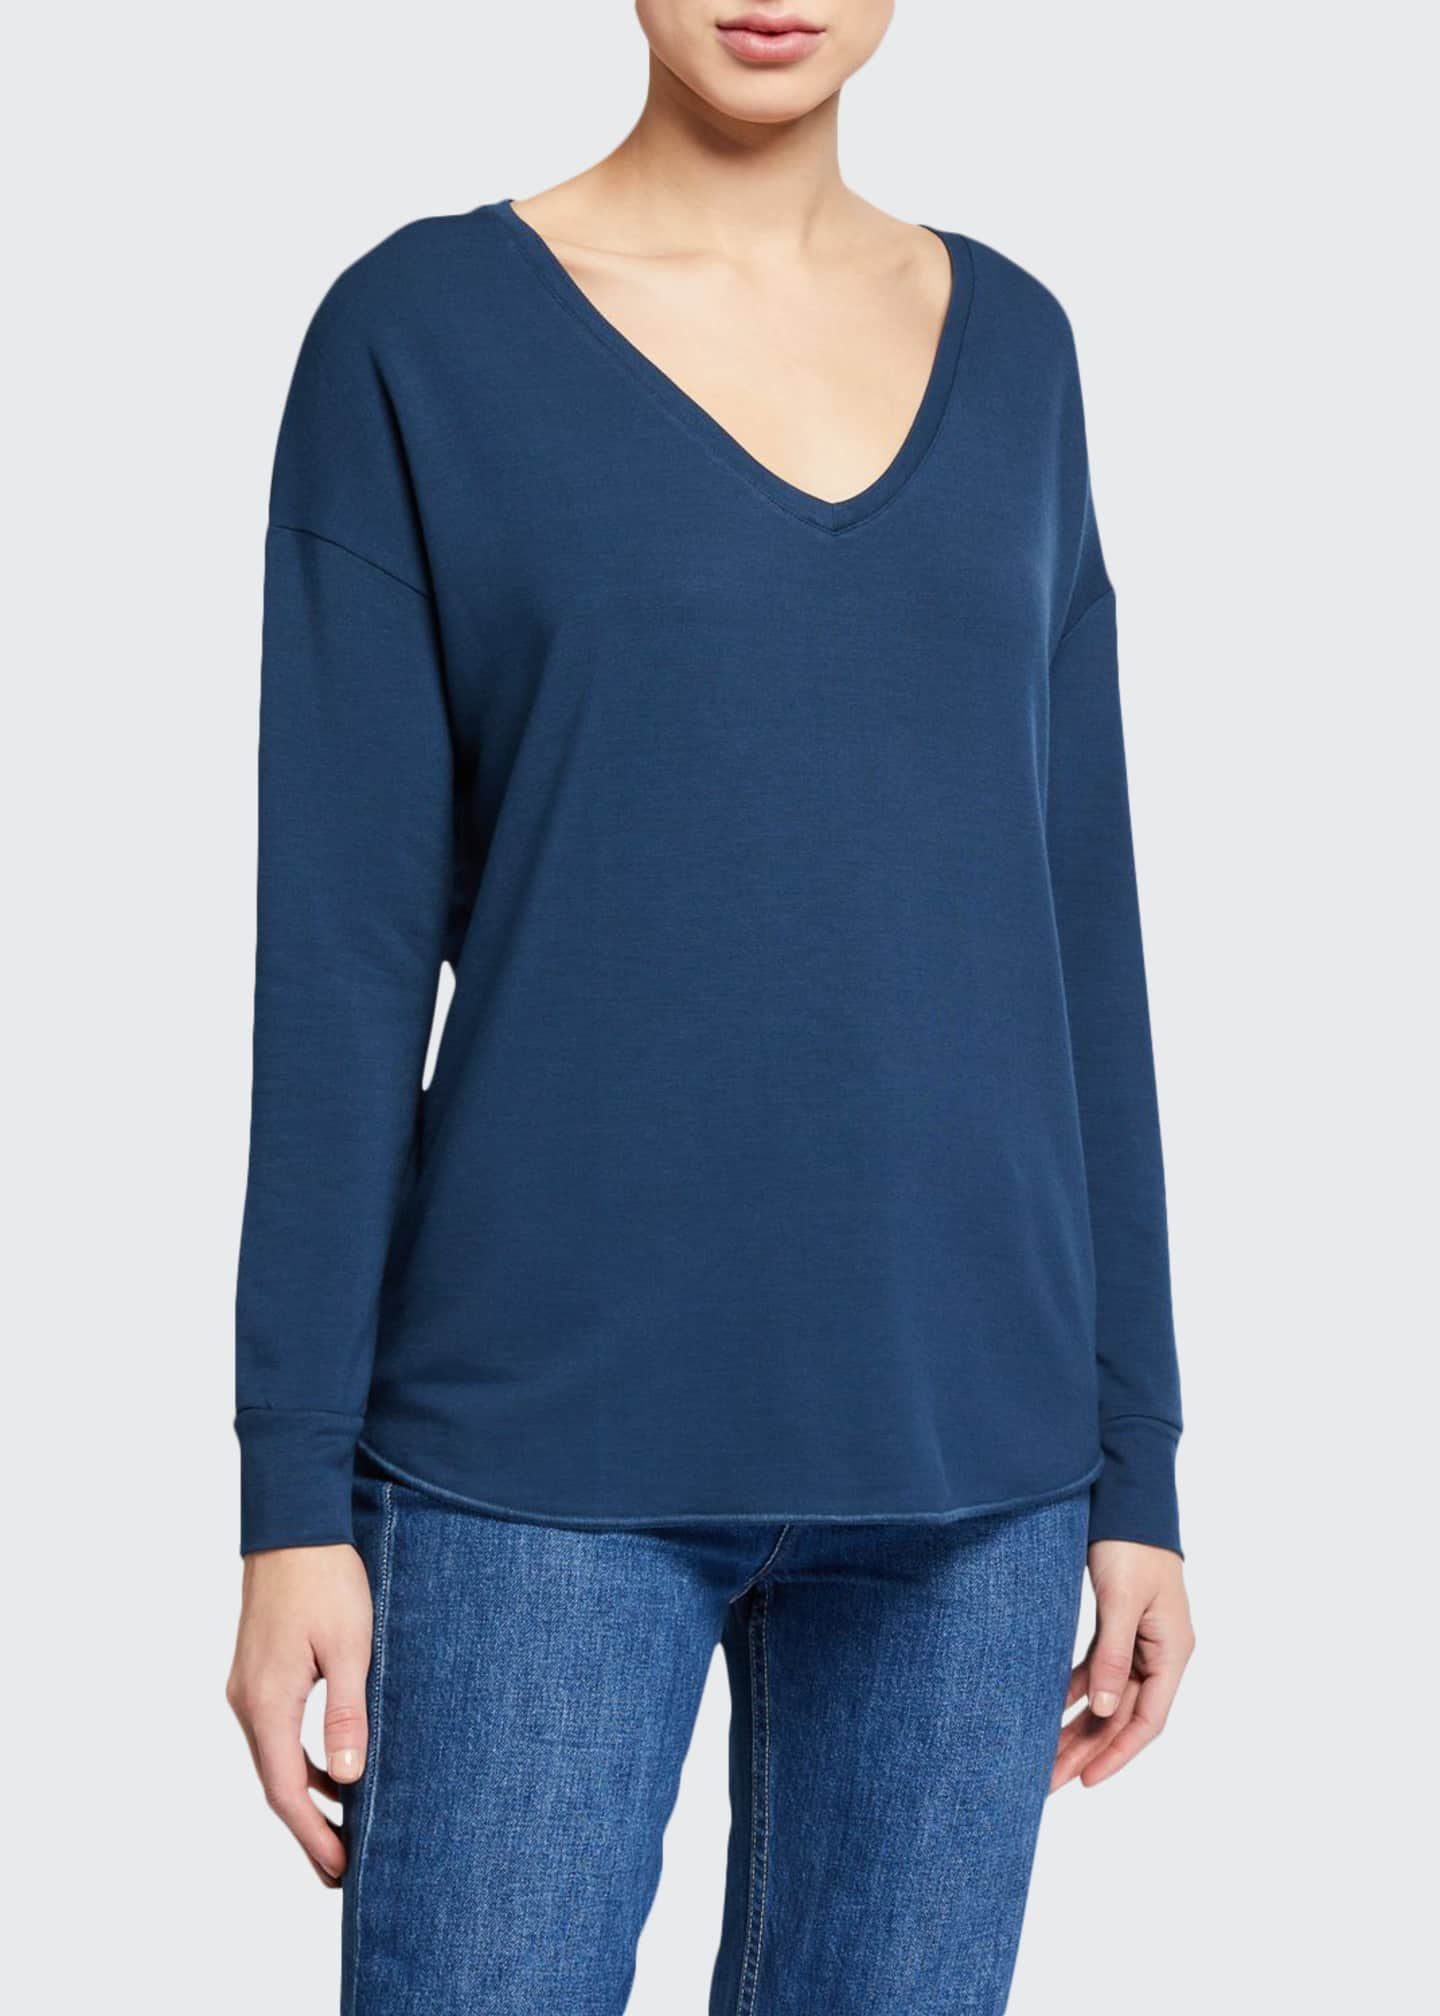 Majestic French-Terry V-Neck Drop-Shoulder Long-Sleeve T-Shirt